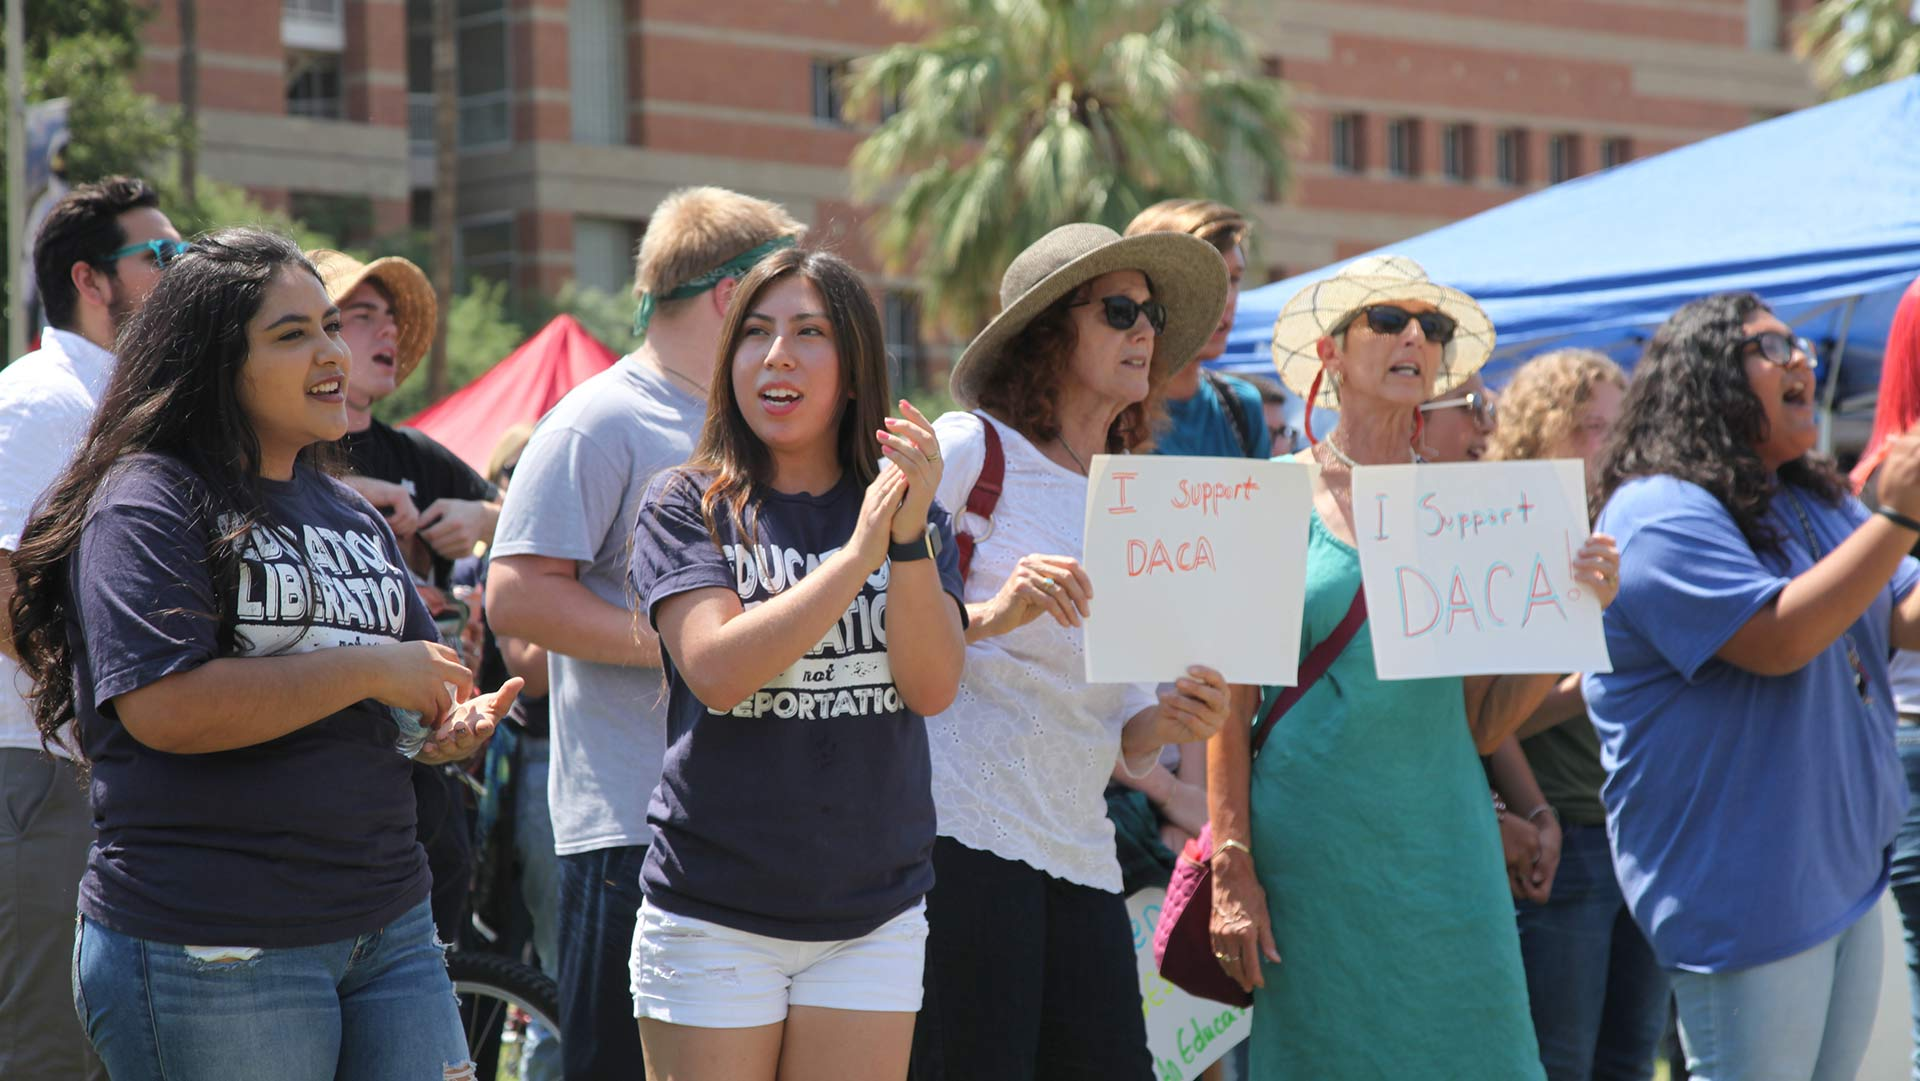 Perla Rojas (left) and Ana Mendoza (center) were among the DACA recipients who gathered on the University of Arizona mall Tuesday afternoon.